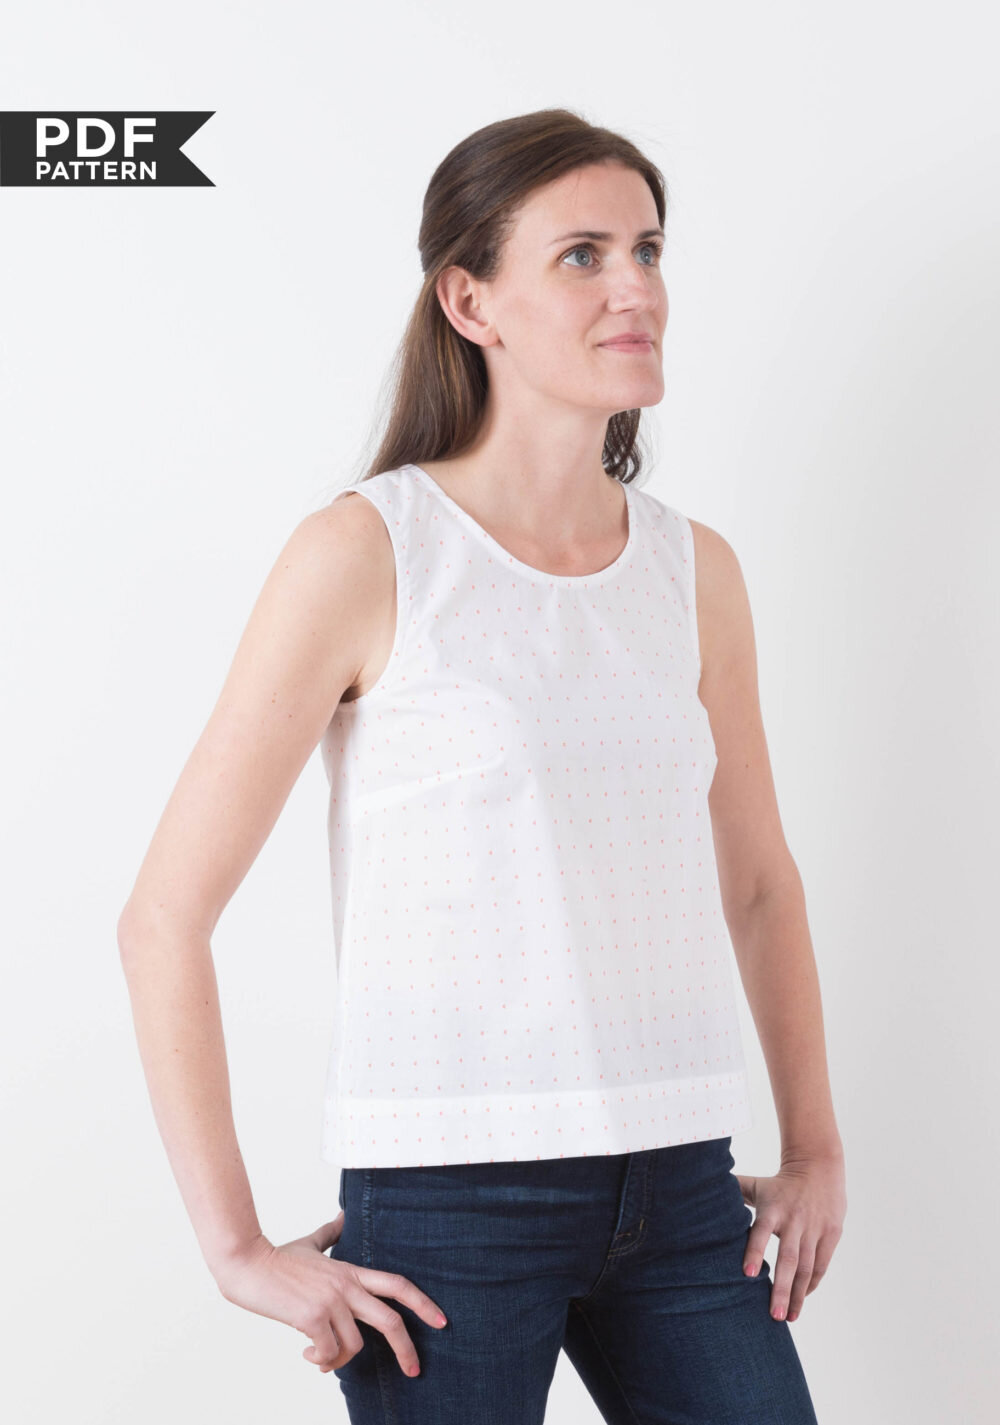 7 Excellent Woven Tank Top Sewing Patterns